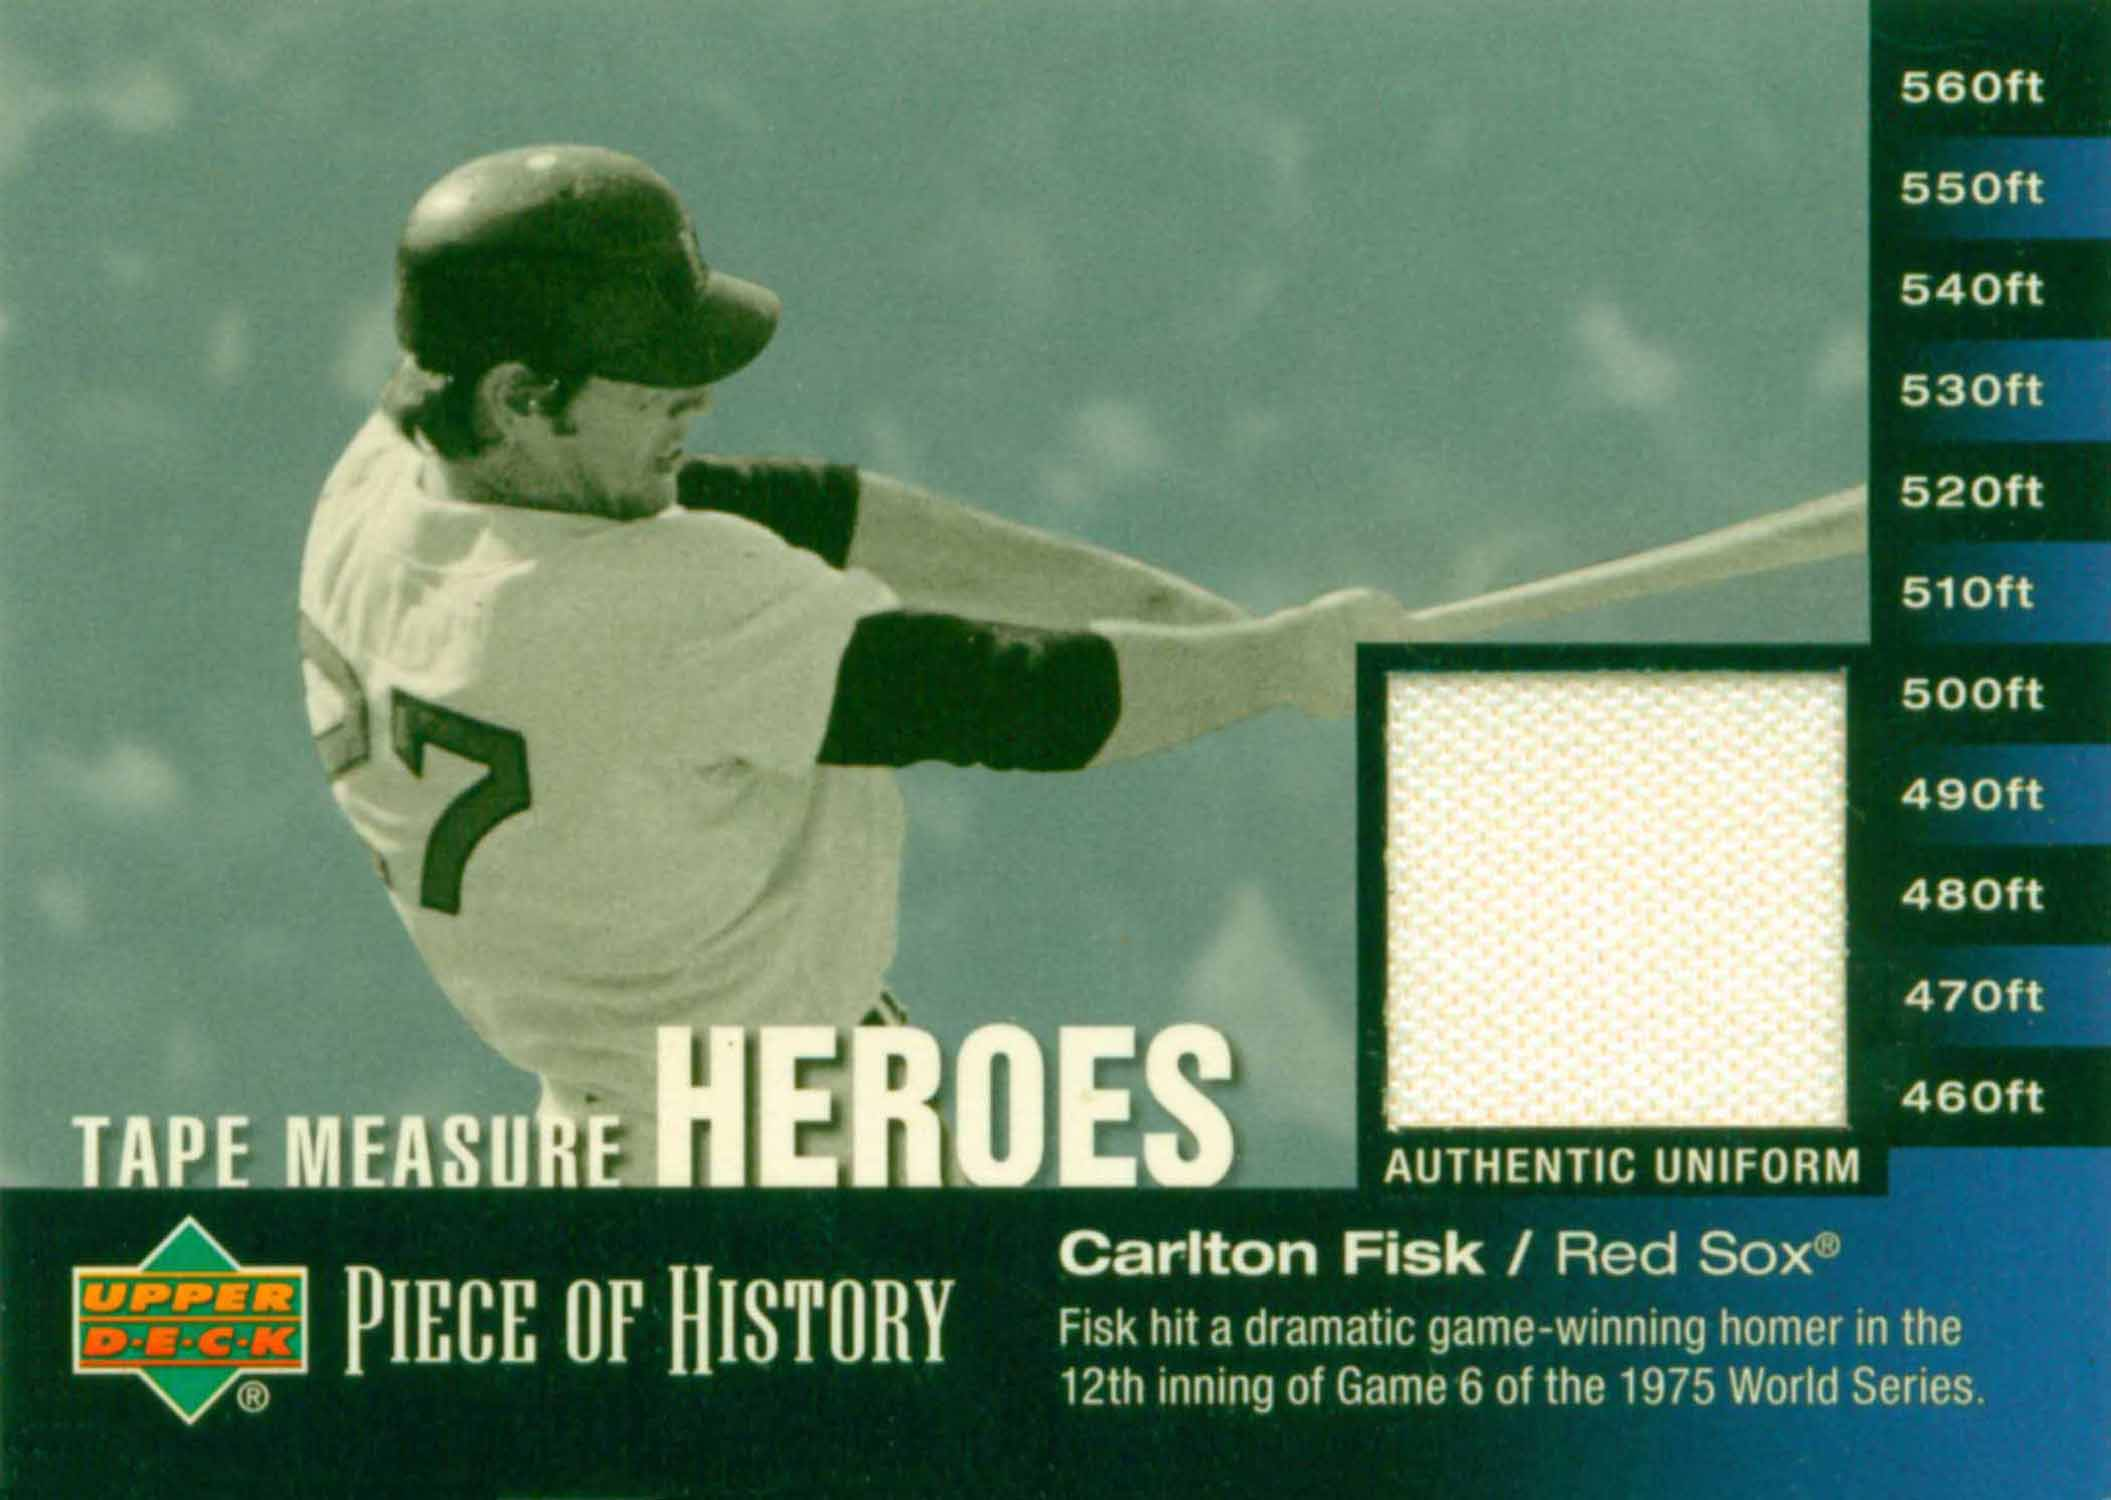 2002 UD Piece of History Tape Measure Heroes Jersey